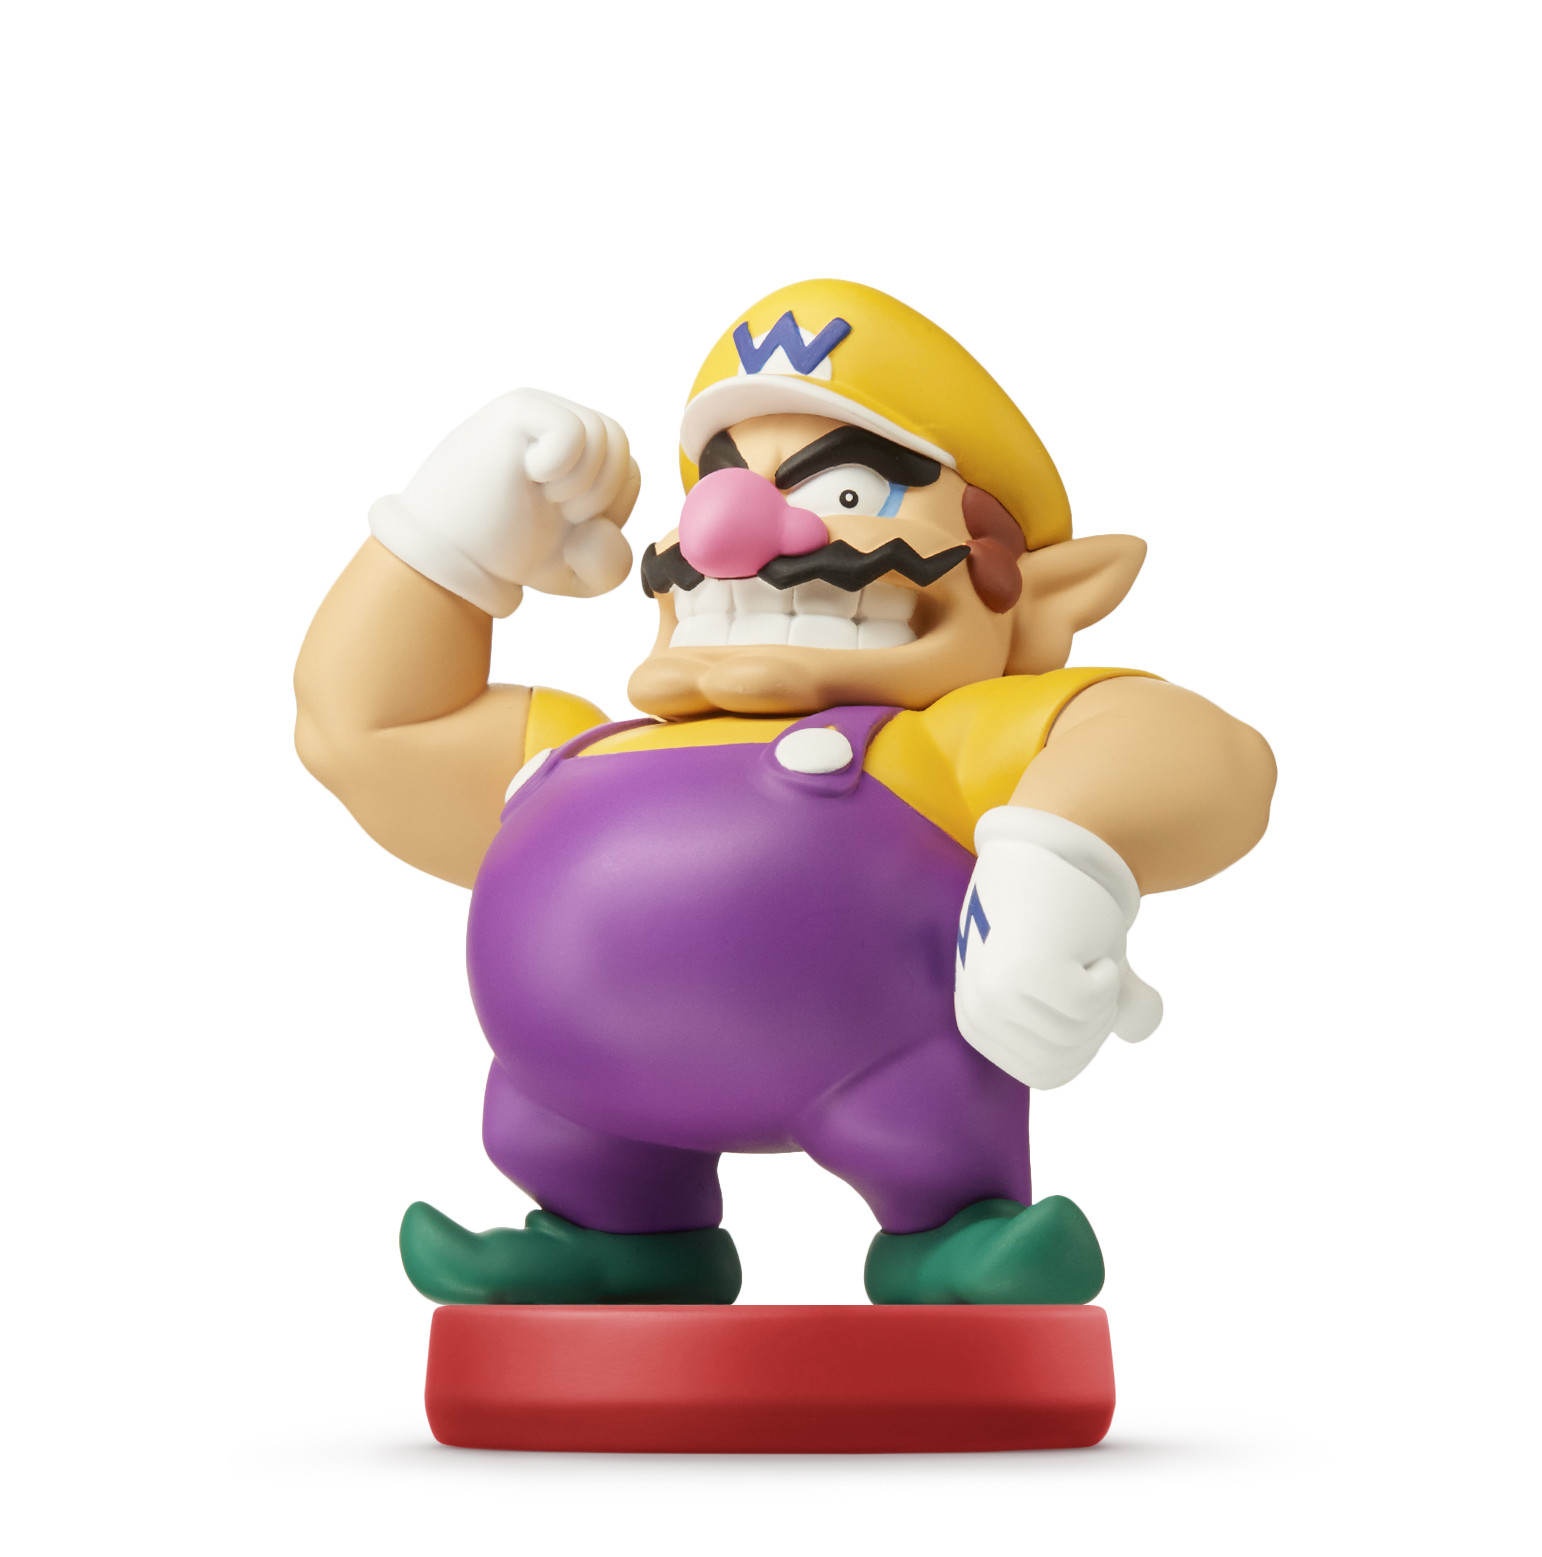 daisy waluigi and glow in the dark boo amiibo among new